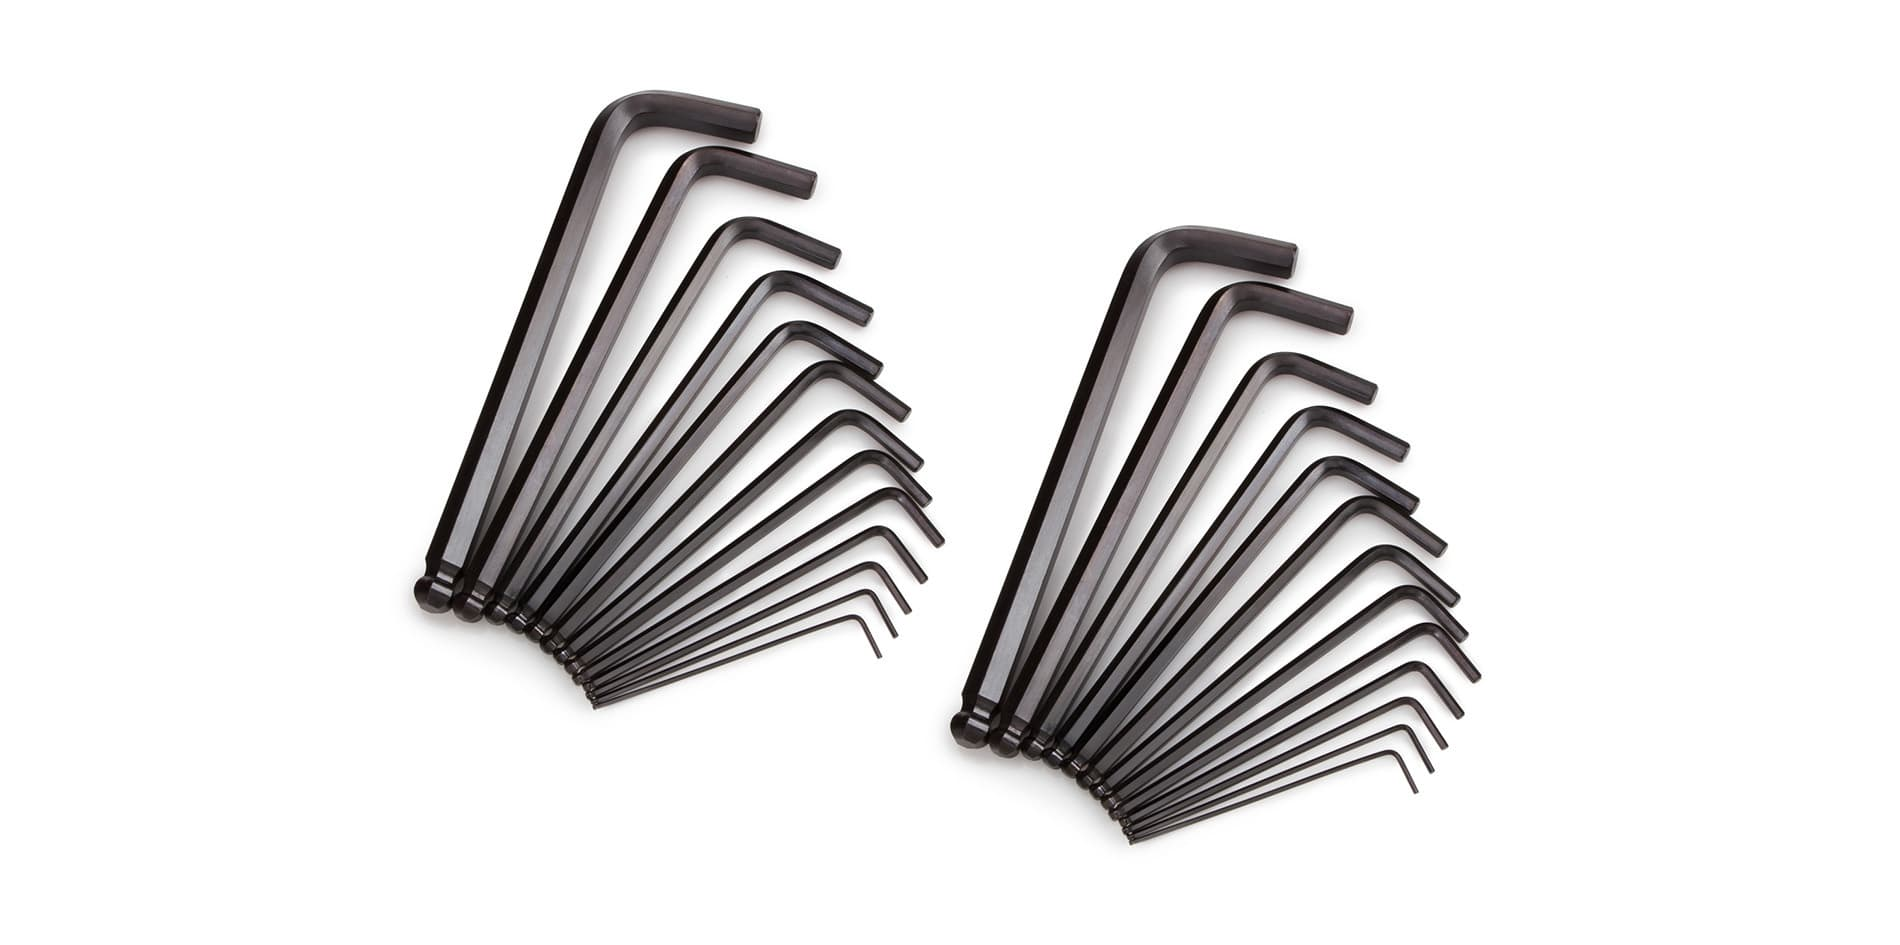 Image showing various sizes of the inch/metric long arm ball end hex key